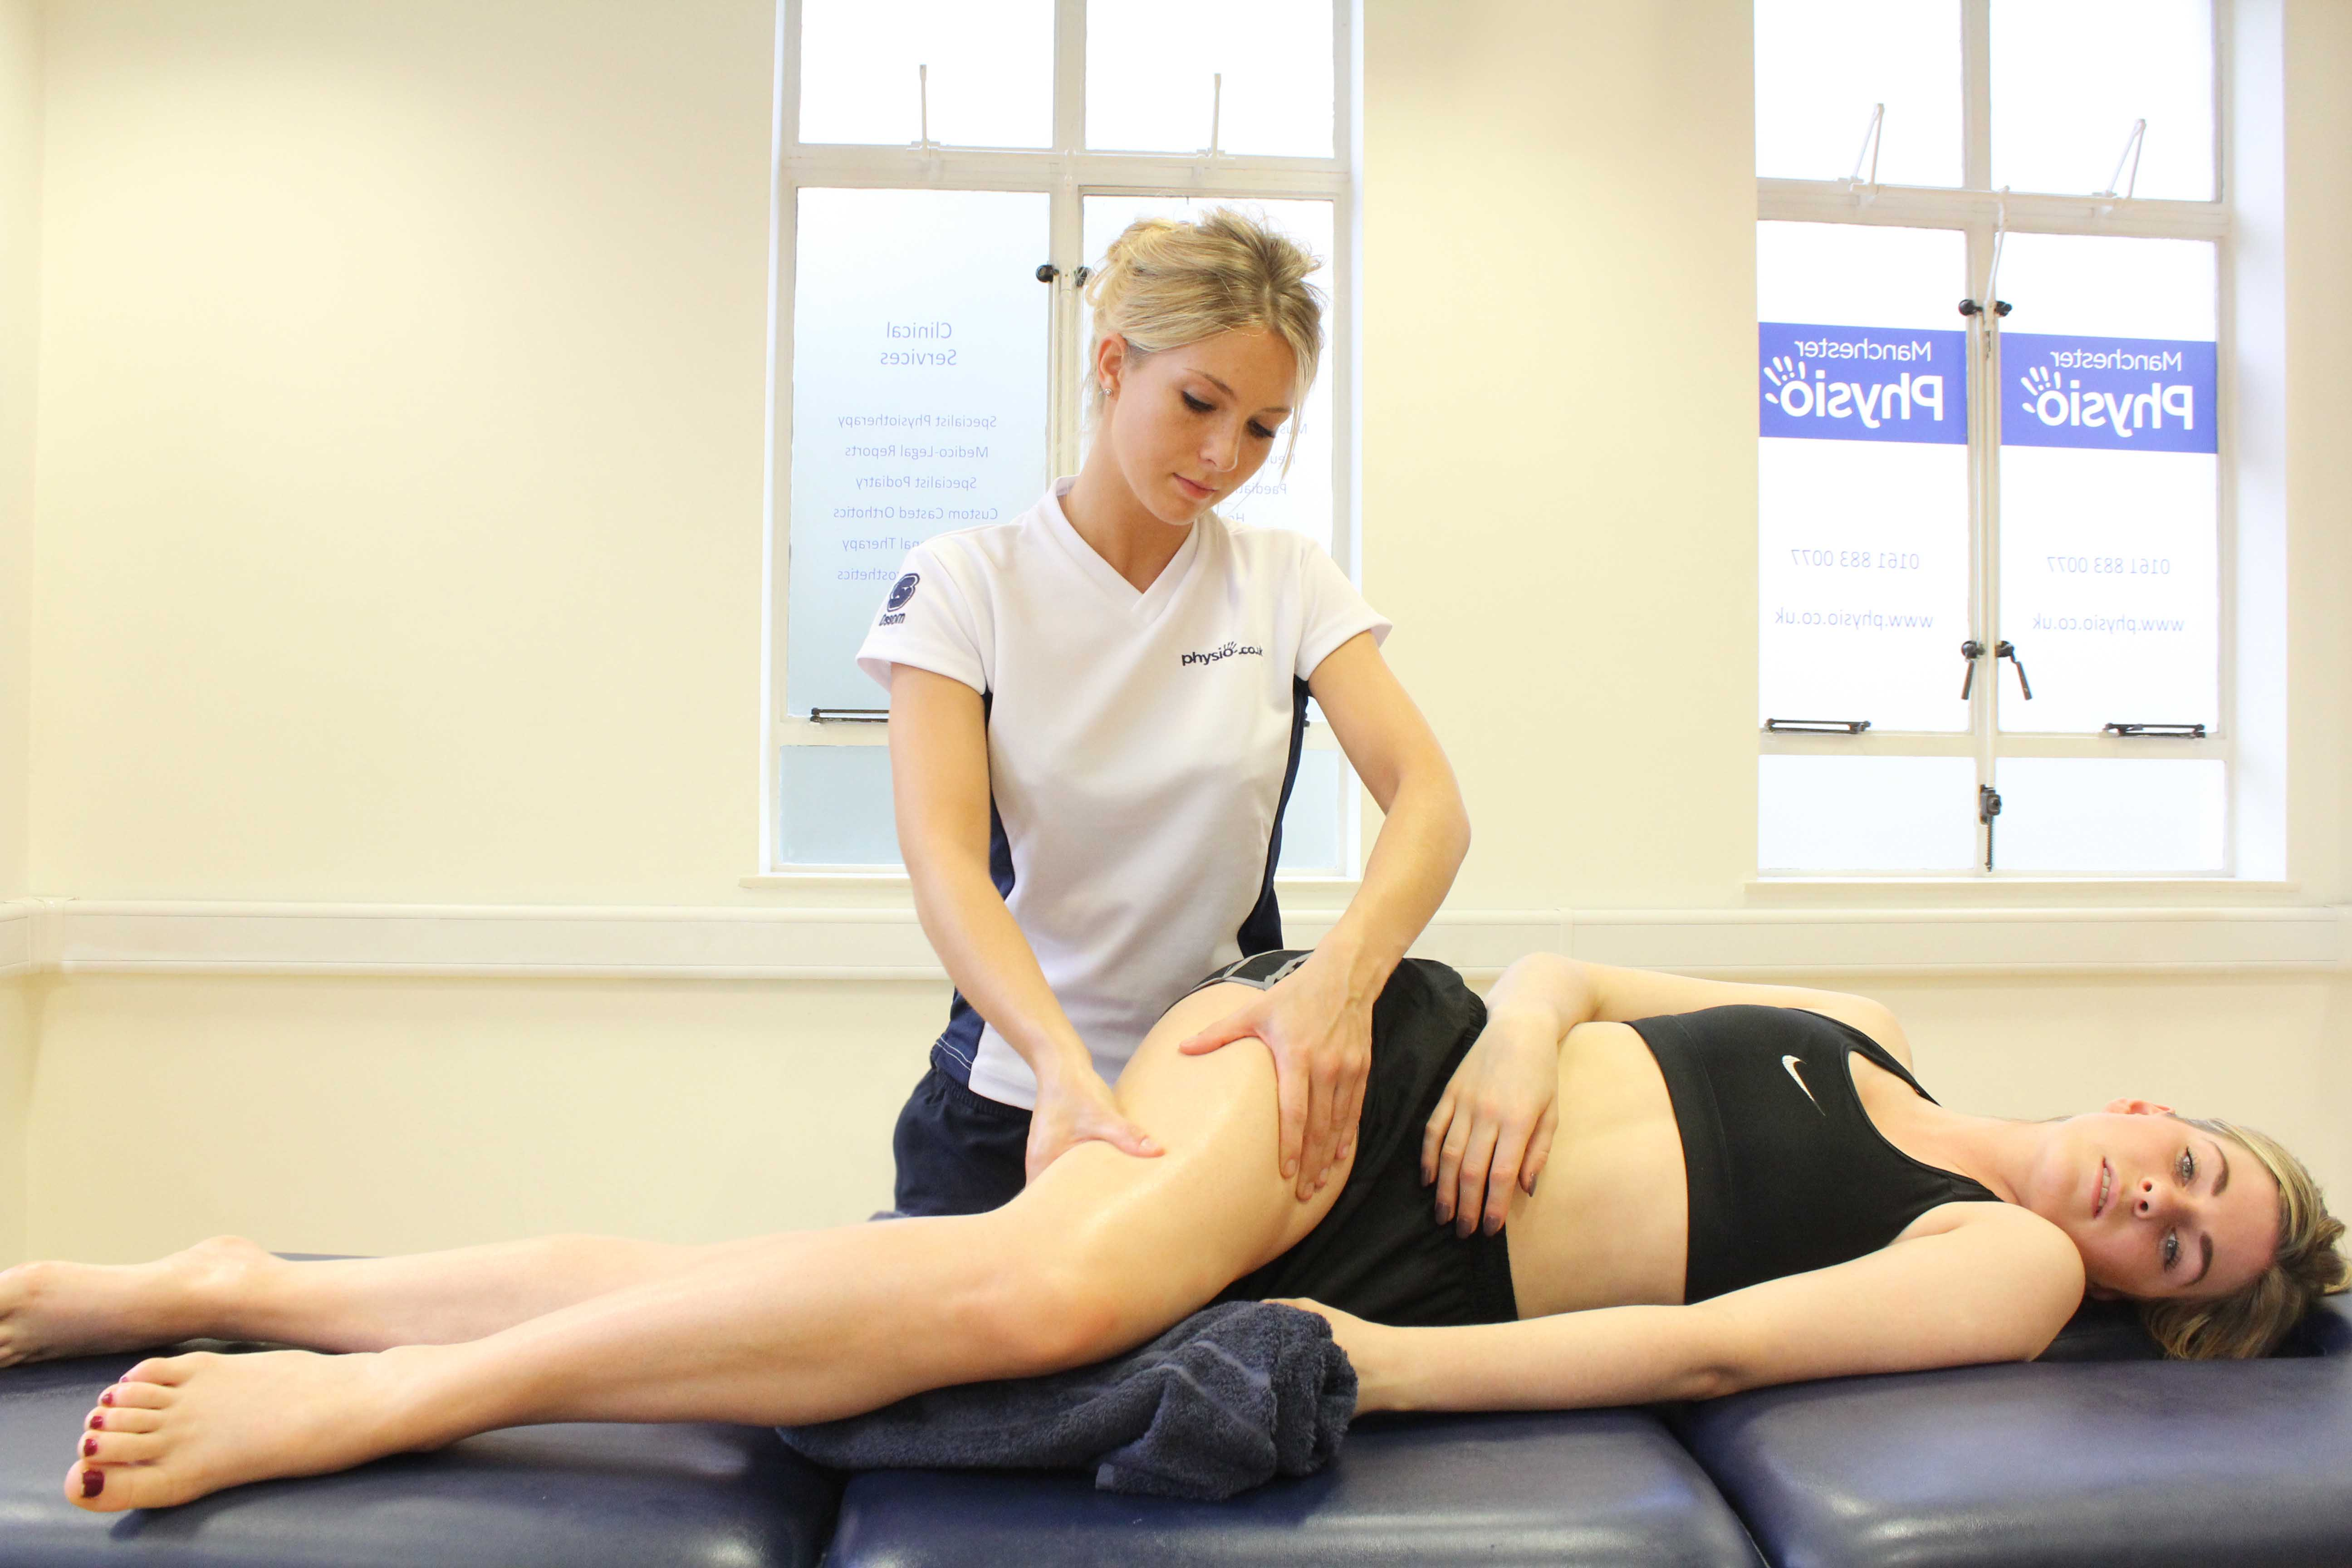 Soft tissue massage of the muscles and connective tissues around the hip